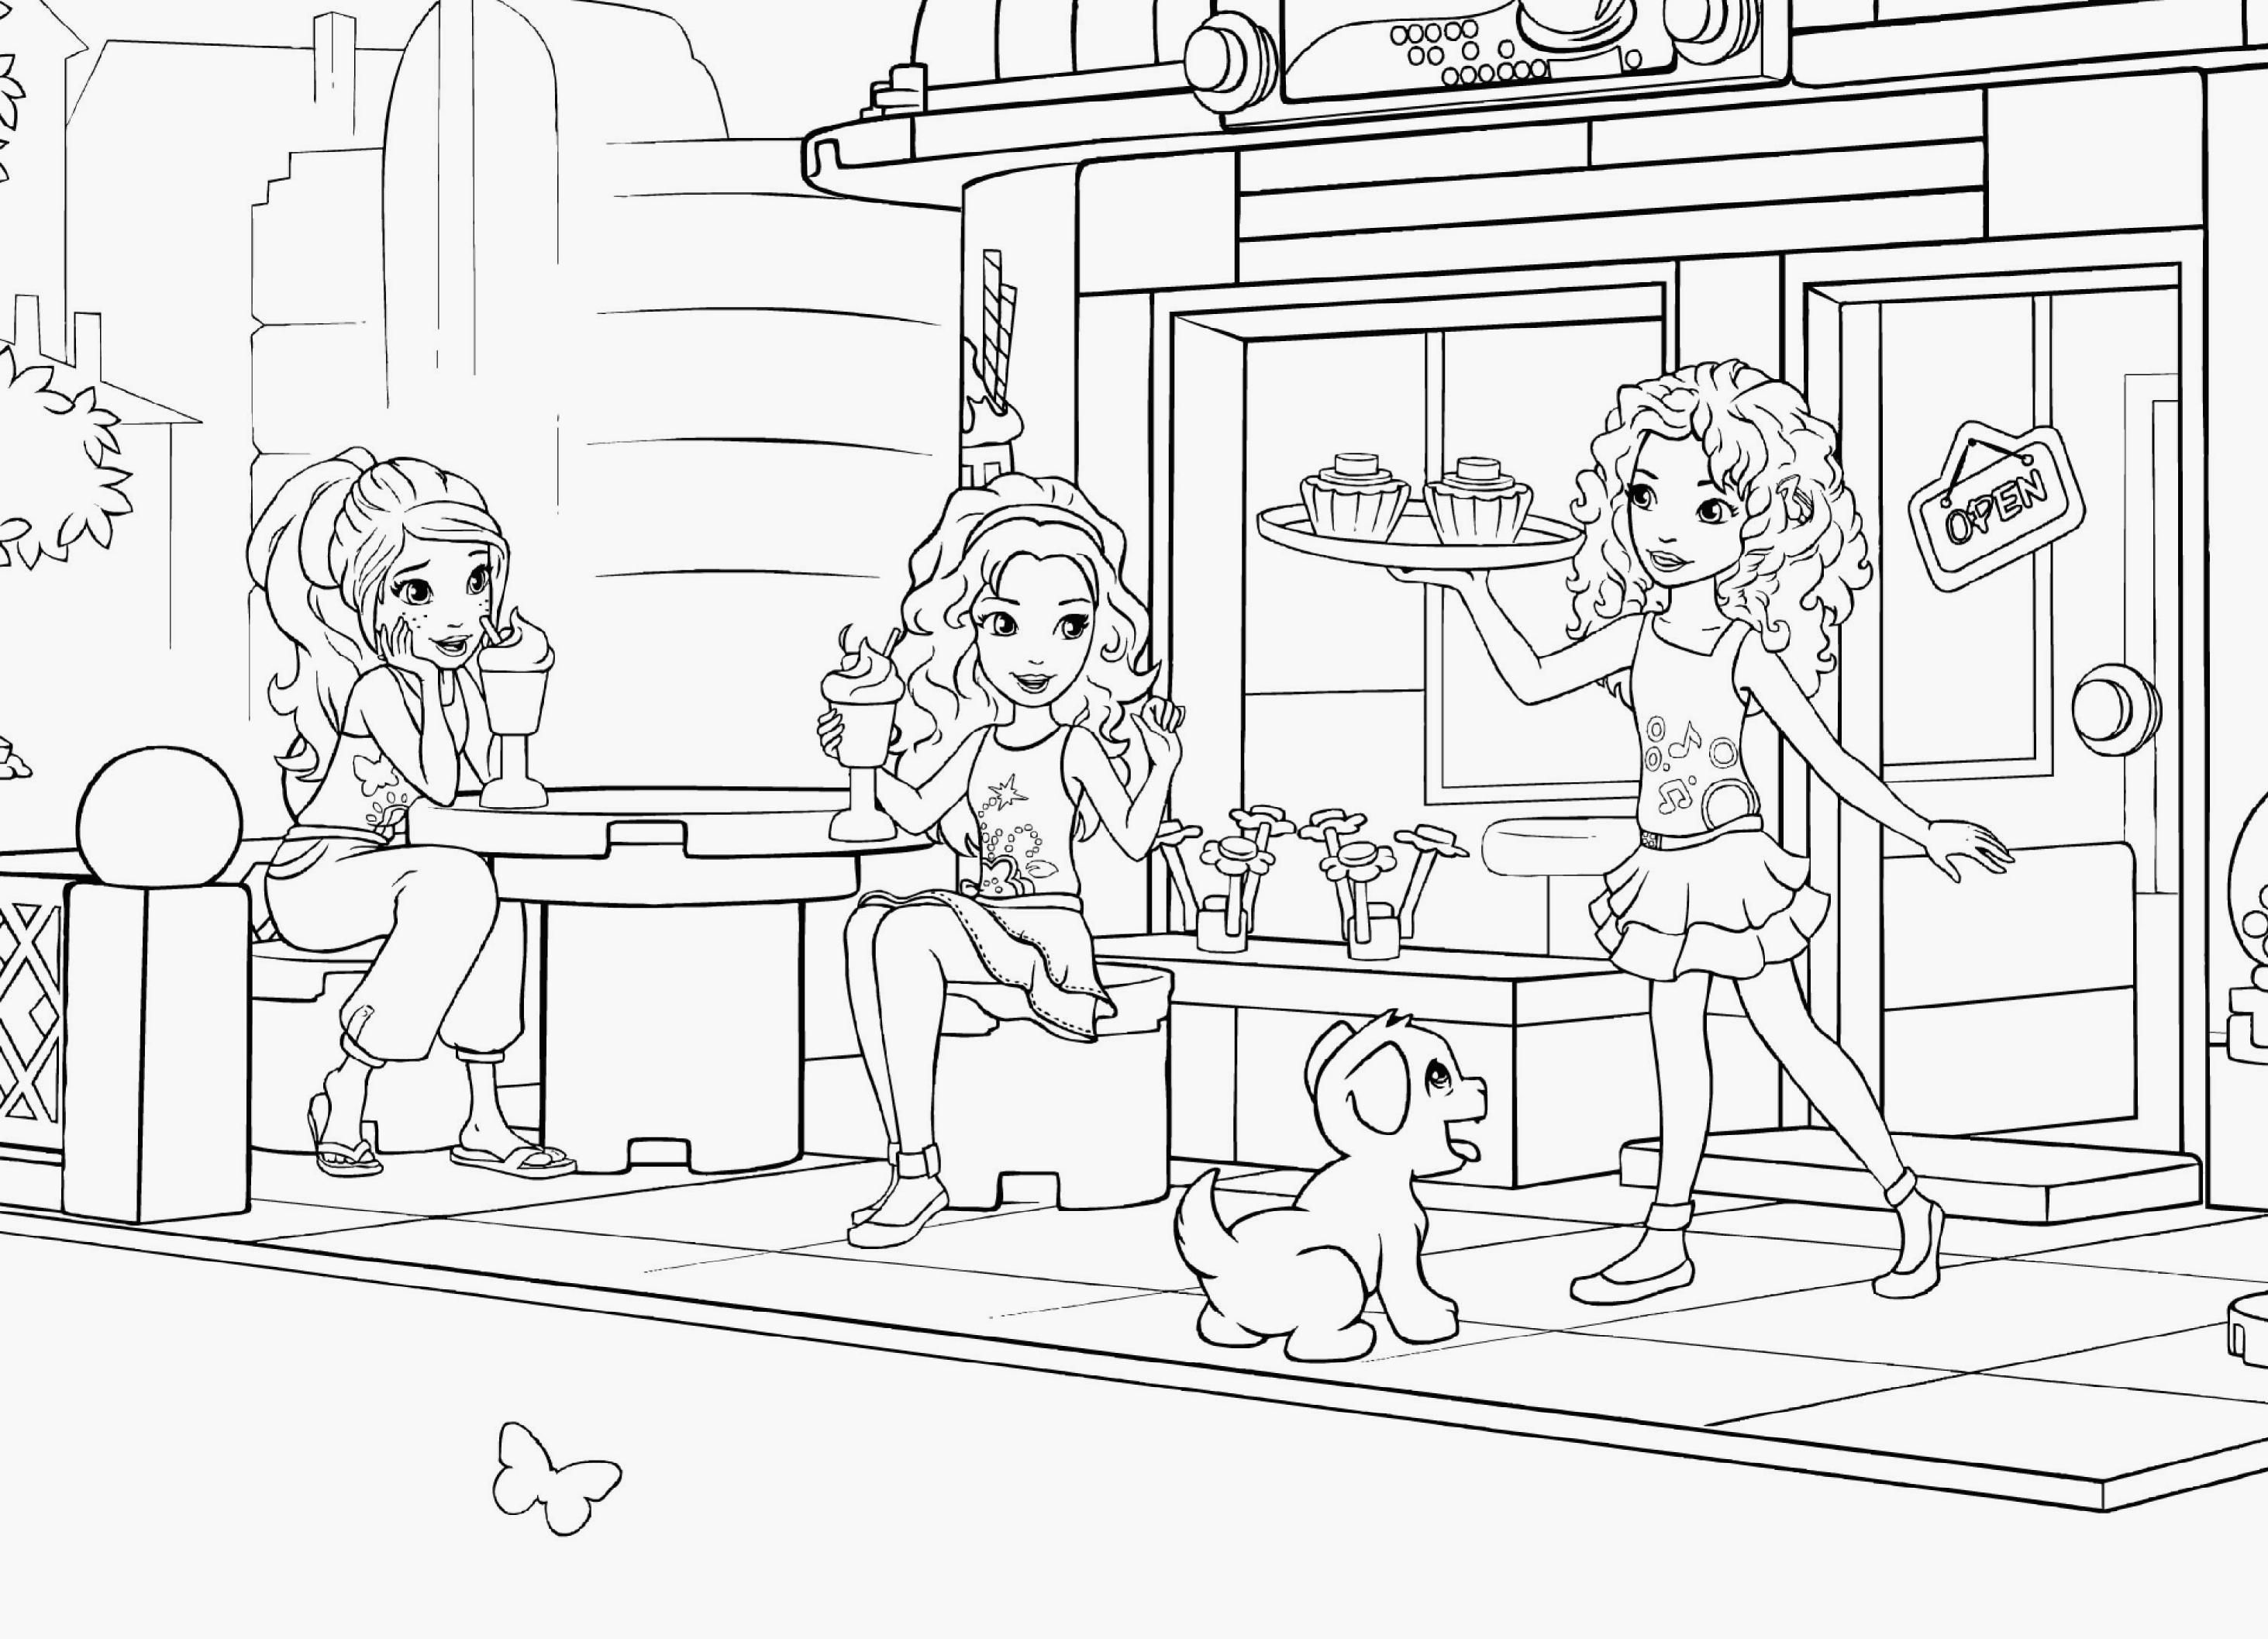 Lego Friends Coloring Pages | Birthday/Party Planning | Pinterest ...